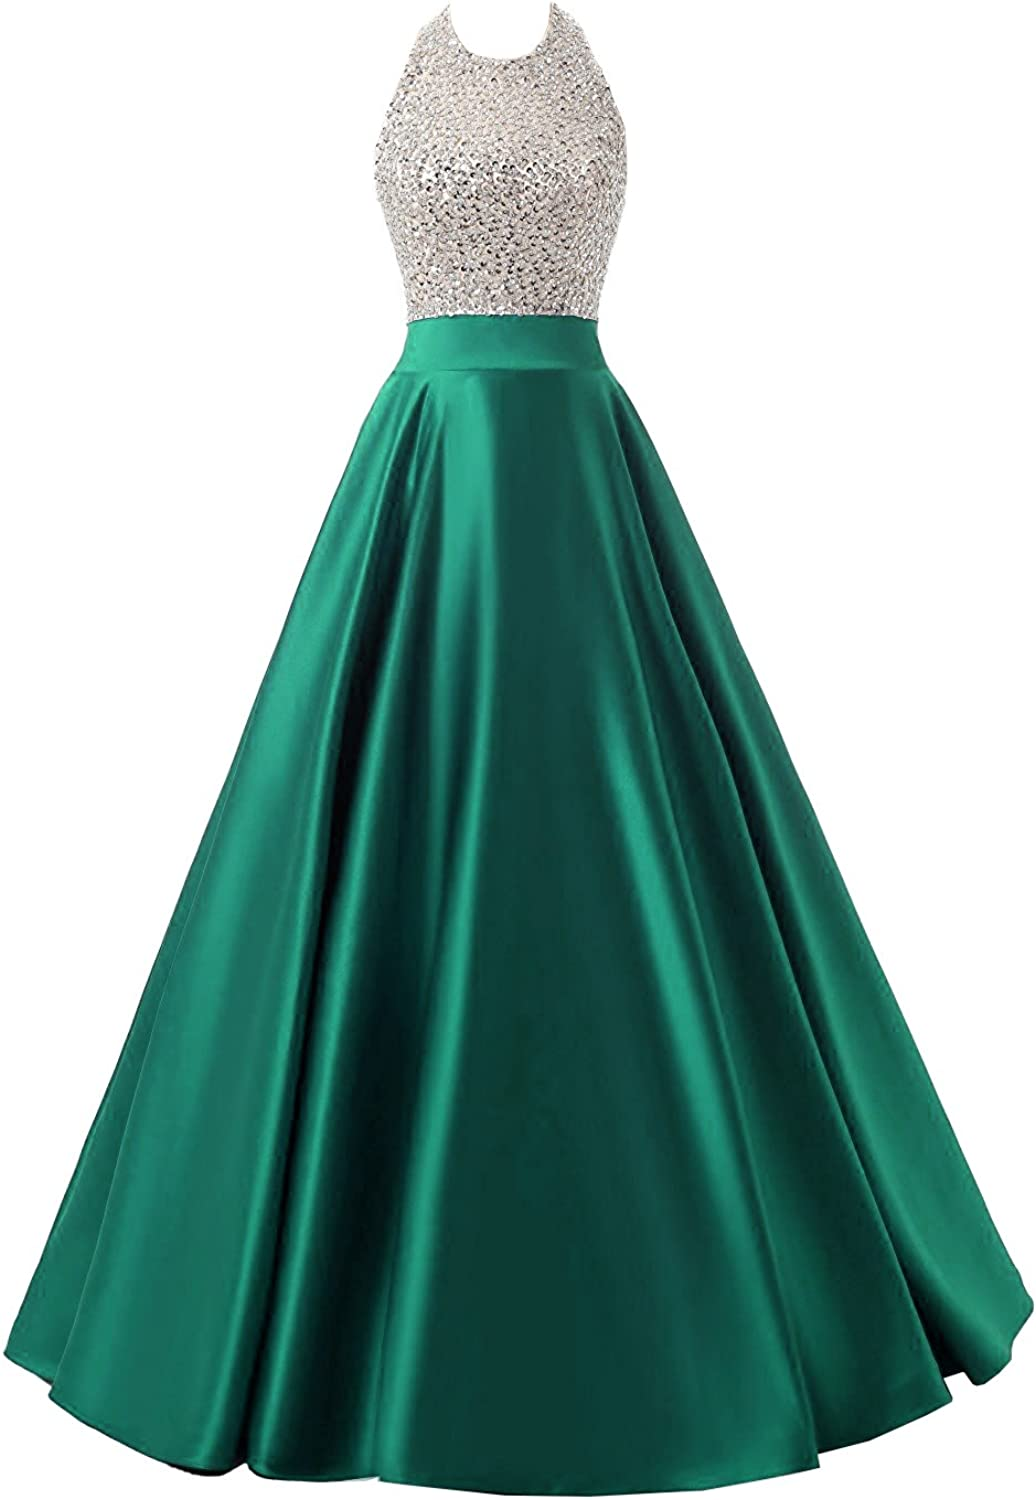 Mypuffgirl Women's Halter Sleeveless Satin A Line Formal Prom Gown with Beaded Bodice